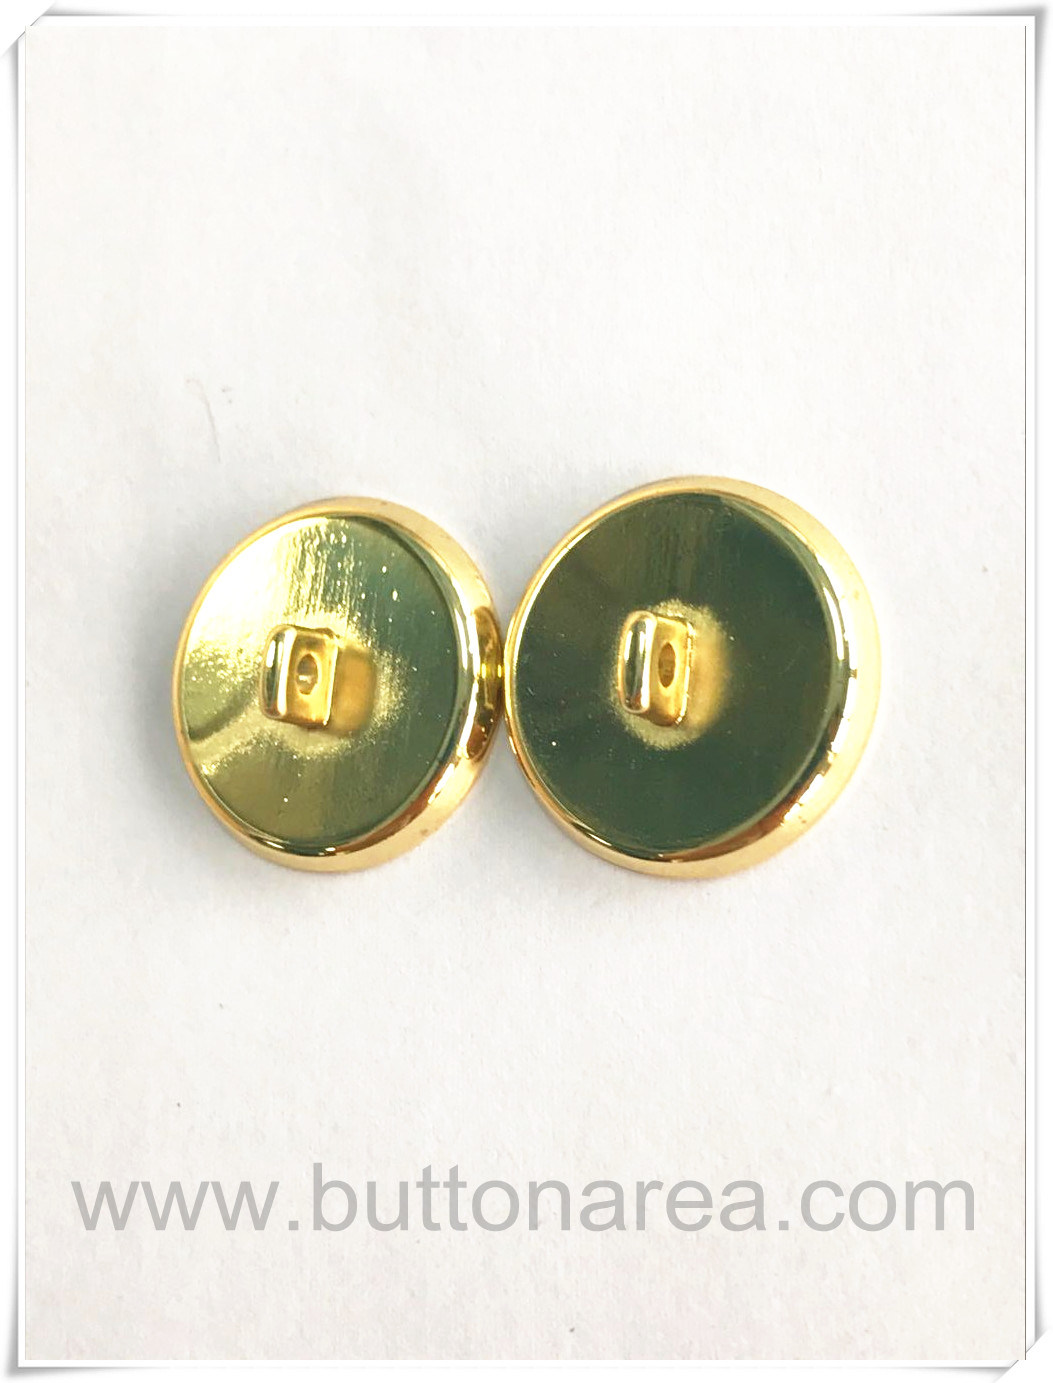 20mm Zinc Alloy Sew on Button for Overcoat Garments